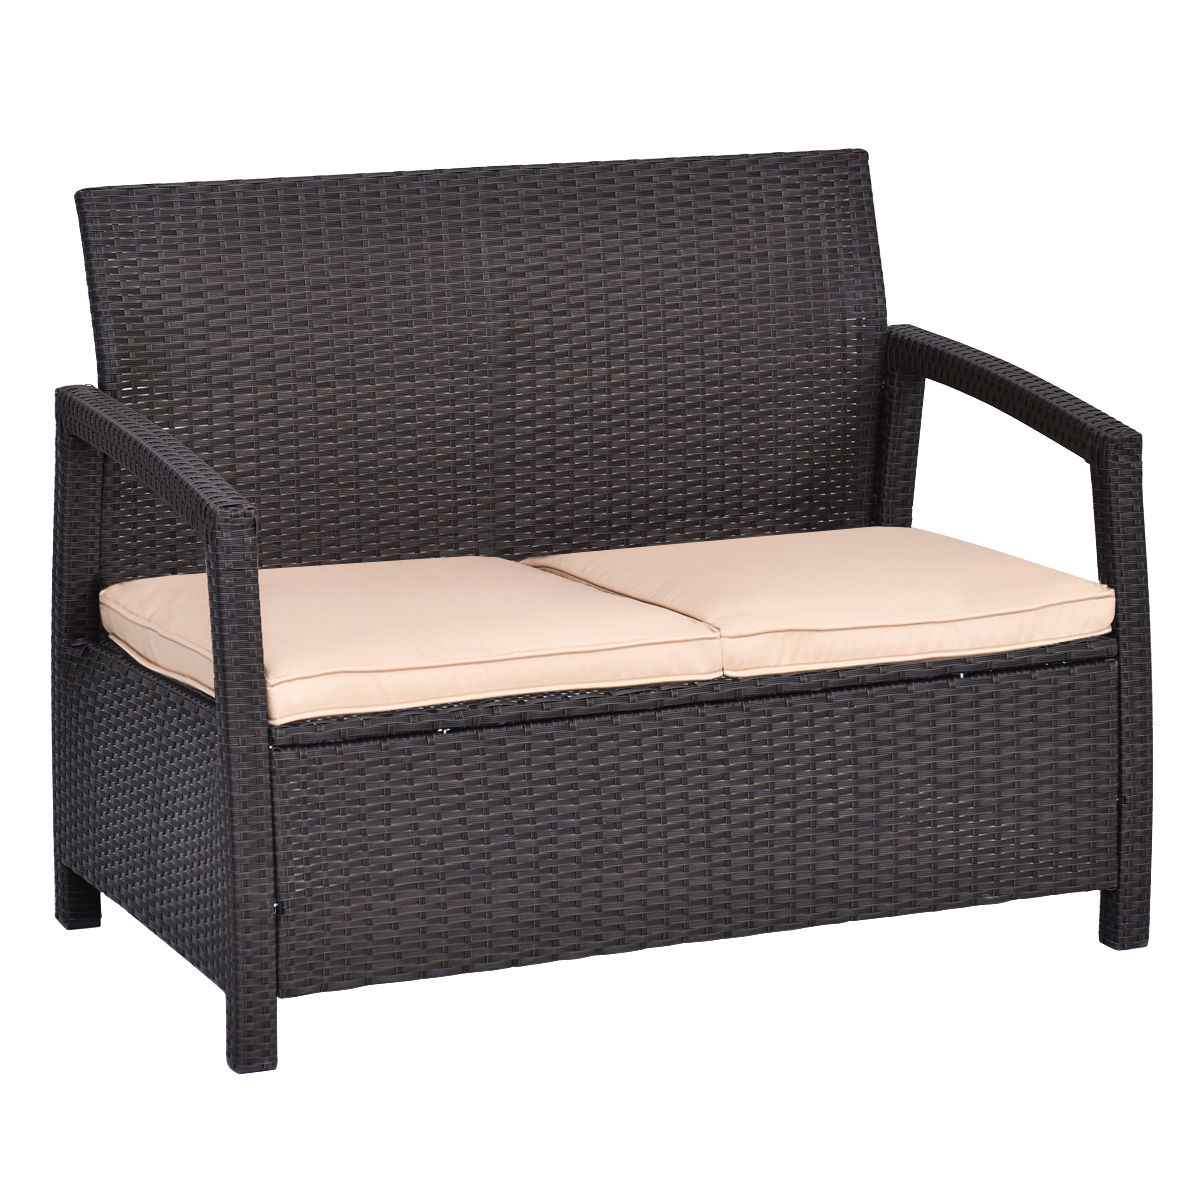 Outdoor Rattan Loveseat Bench Couch Chair With Cushions Patio